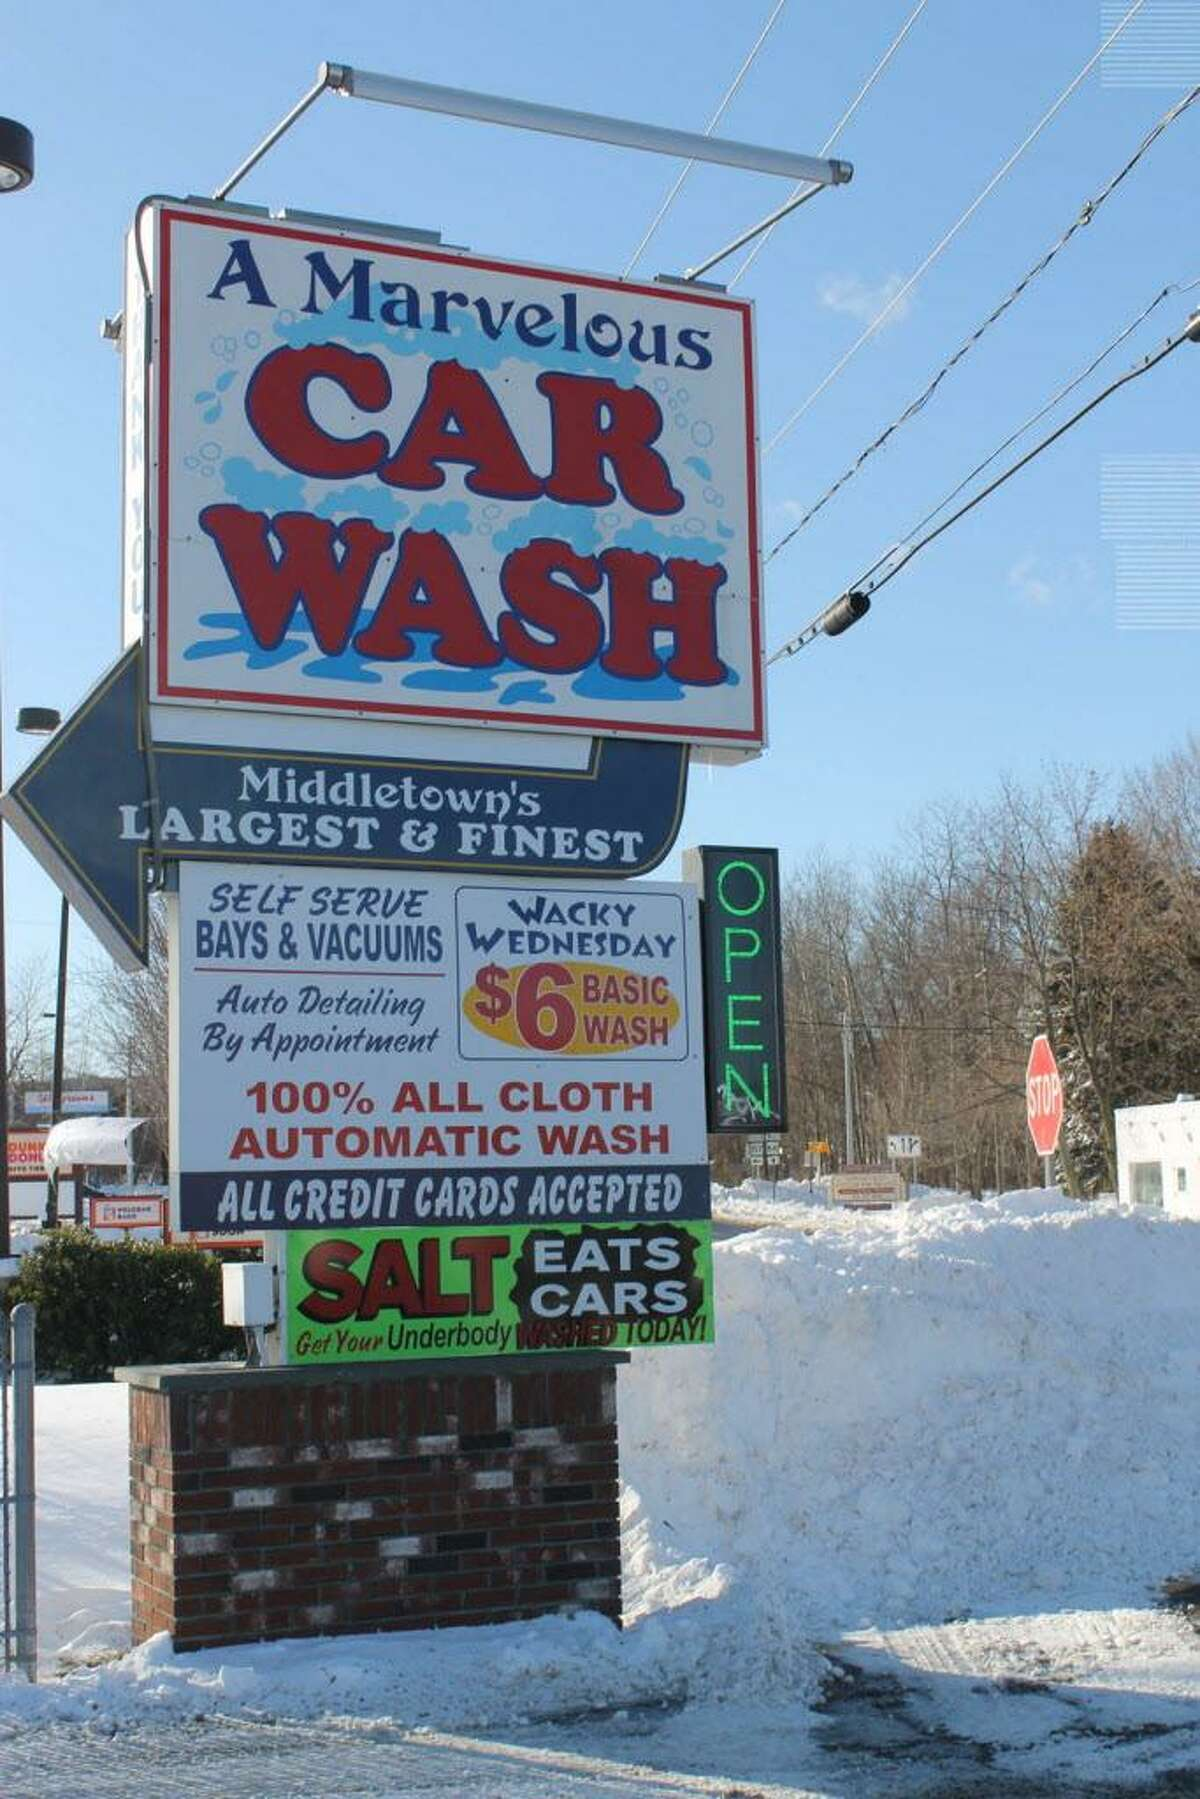 """""""If we want to live up to our car wash name, then it's hands on for me. Customer service comes first,"""" Rook said. His father, who runs Victor's Auto Body down the street, """"taught me that customers are always number one."""""""